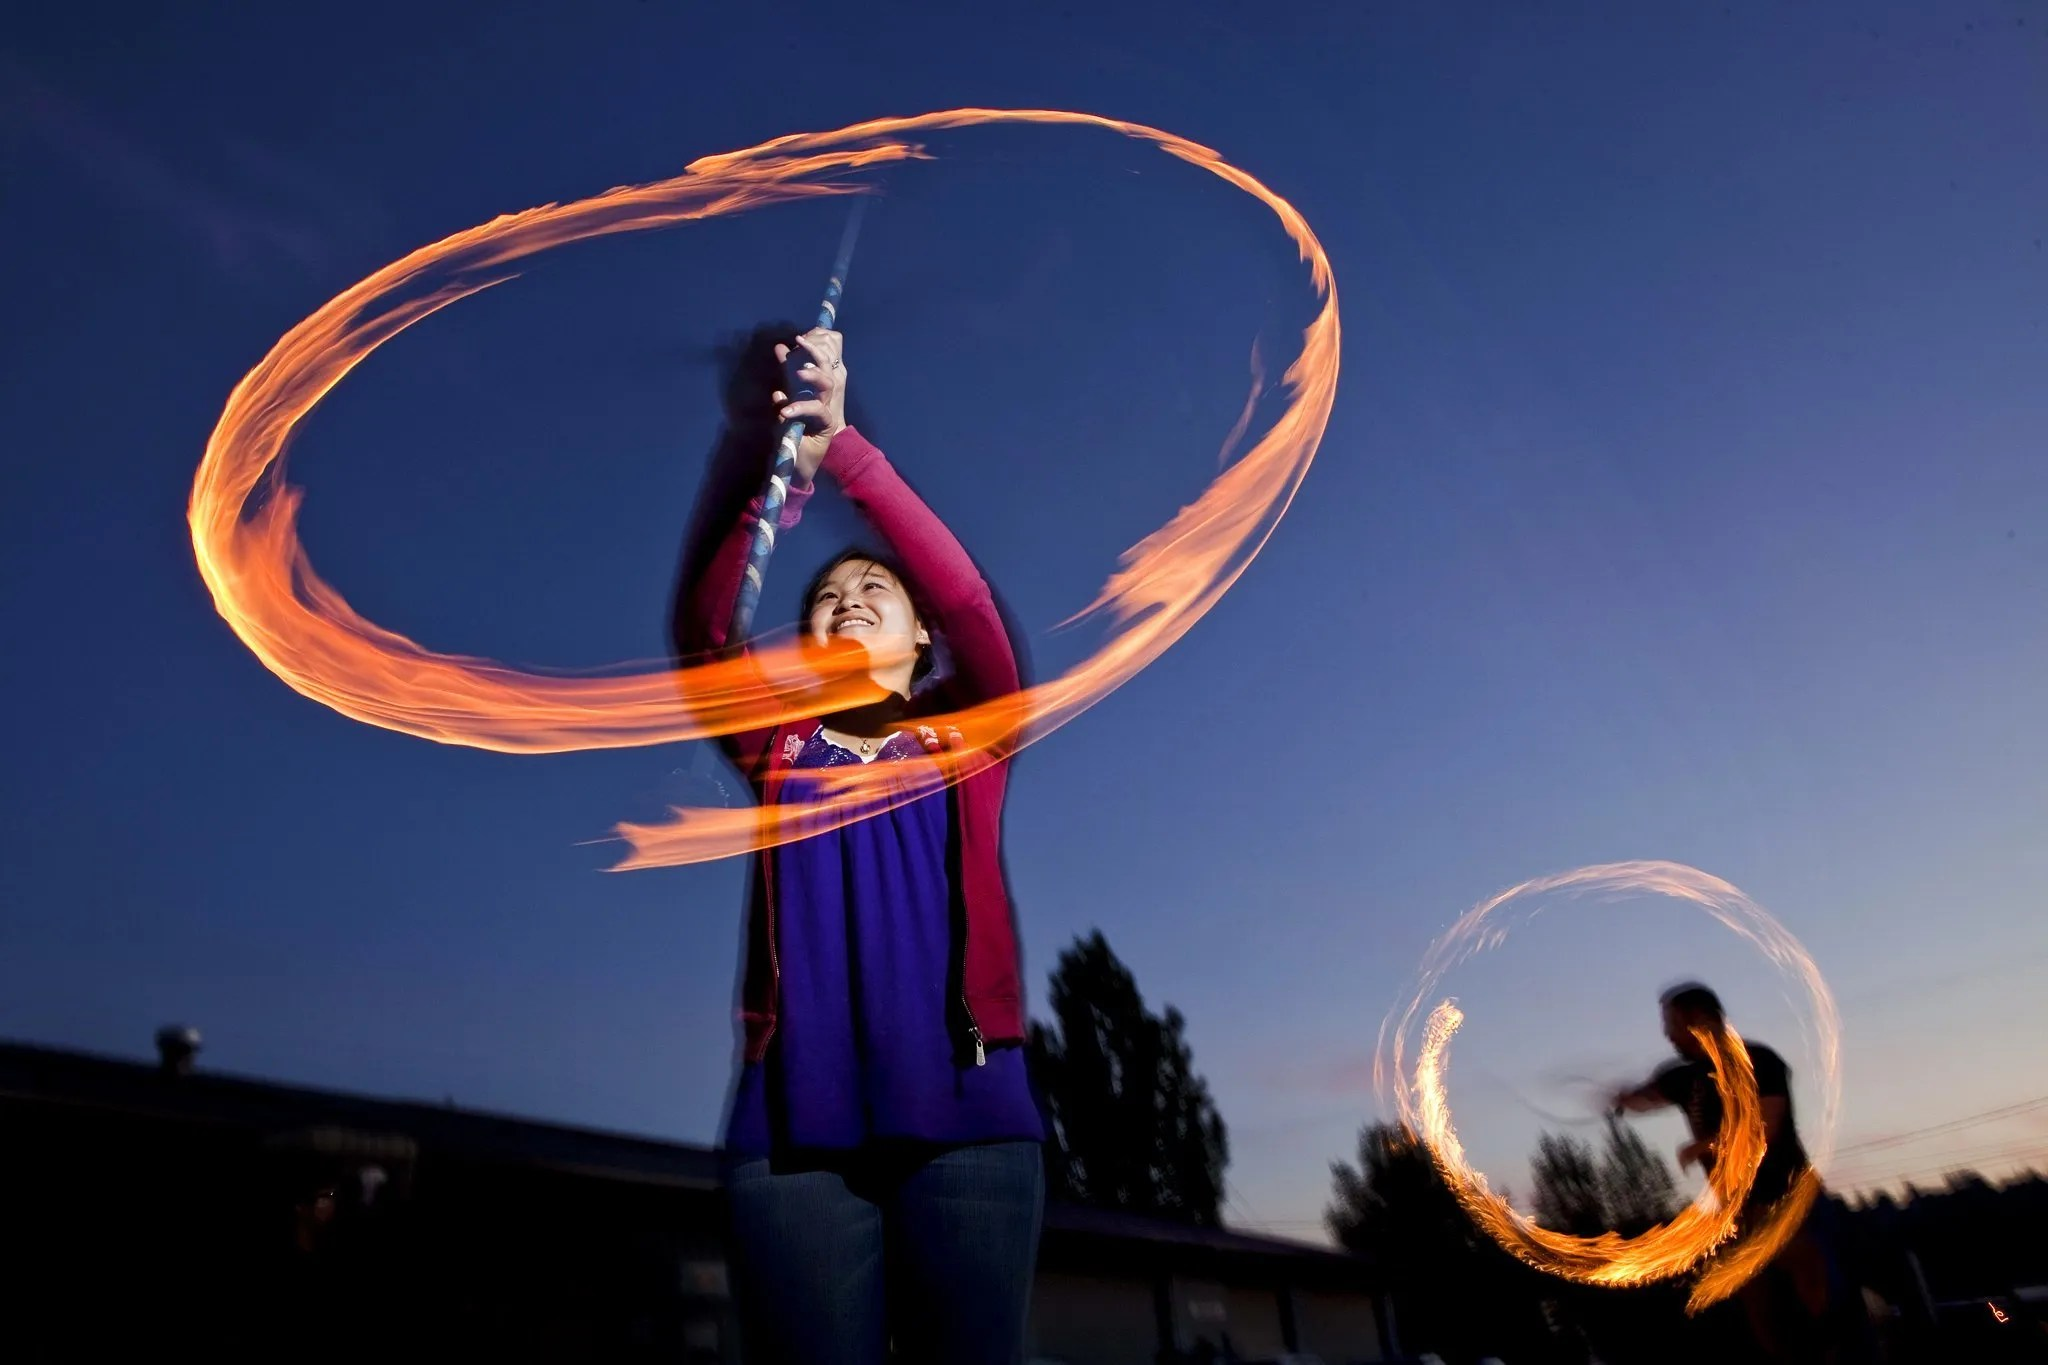 introductory fire dancing classes